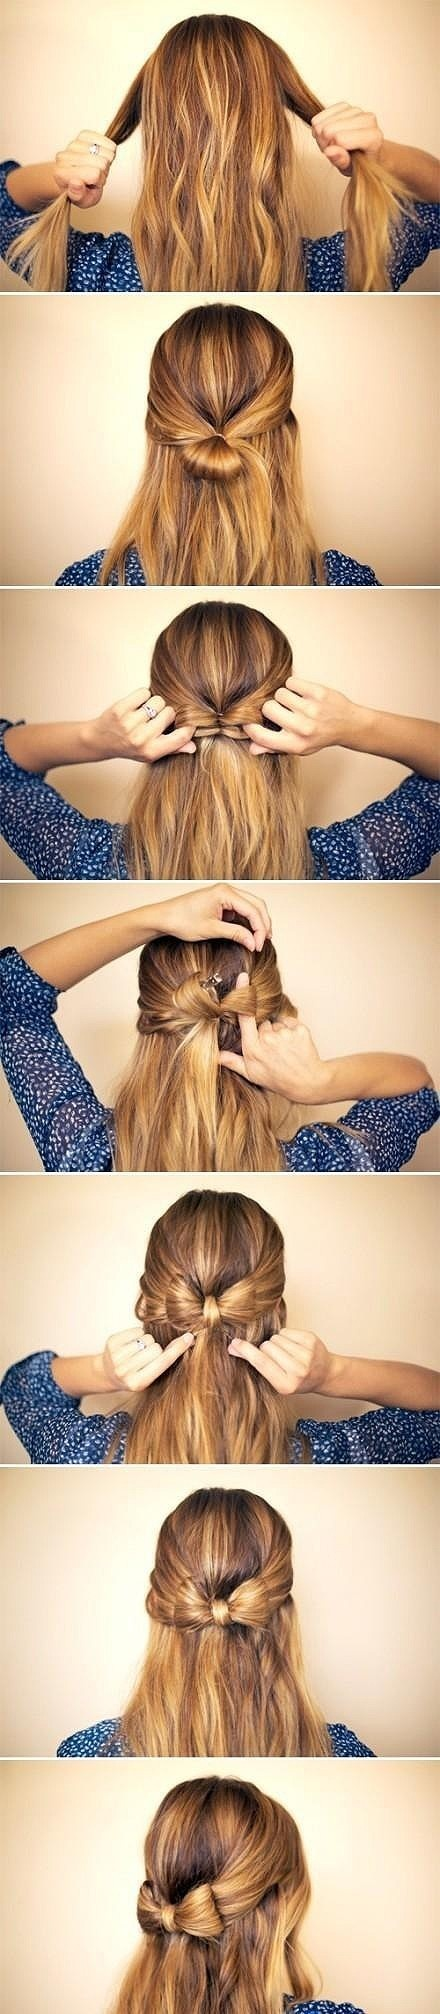 Hairstyle Tutorials (8)